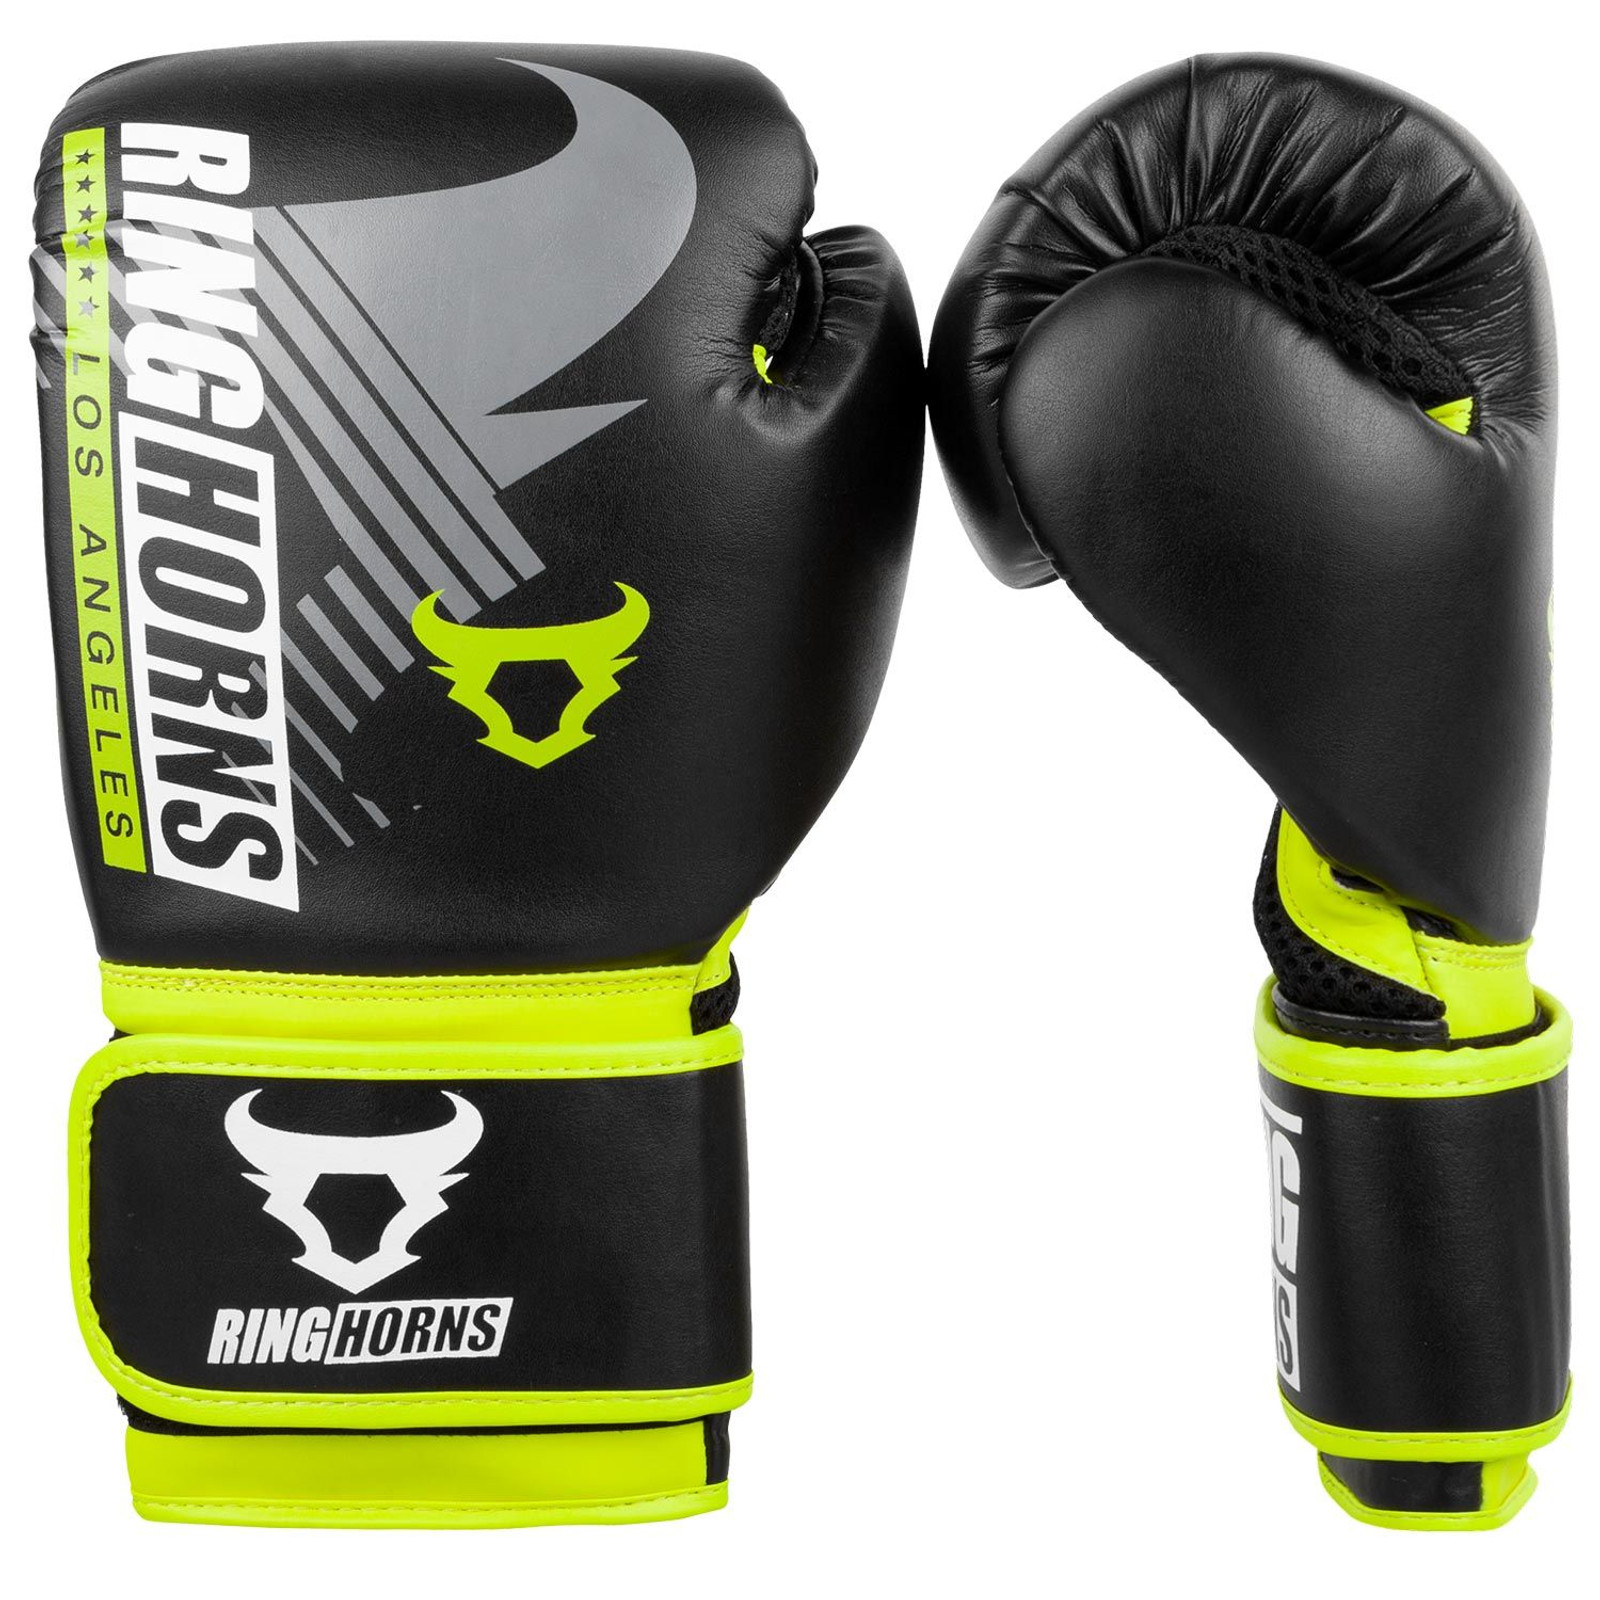 Ringhorns Boxhandschuhe Charger MX